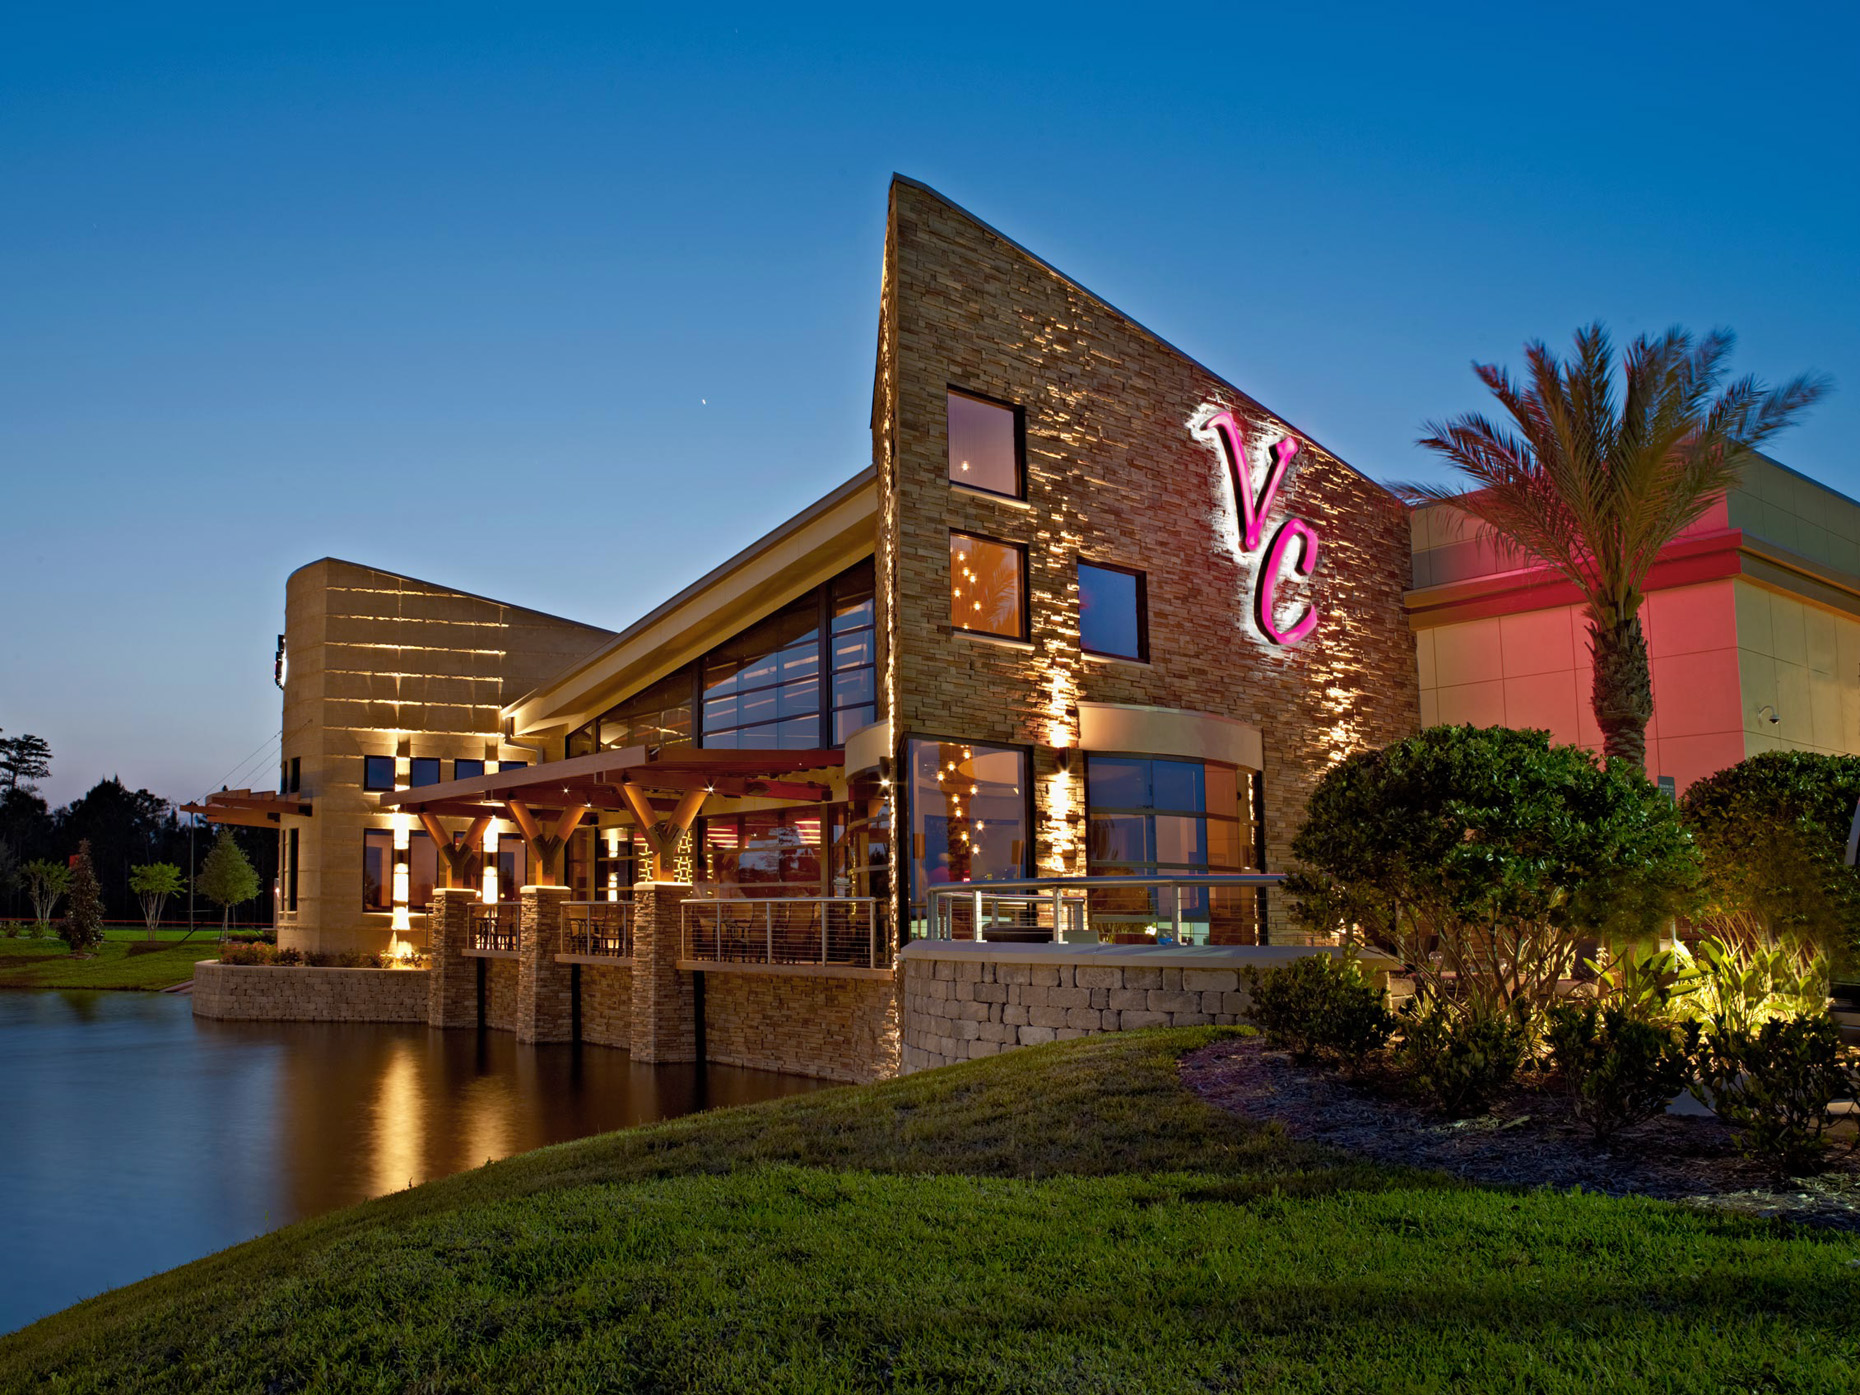 Chef & Restaurant Photography | Vince Carter Restaurant Exterior